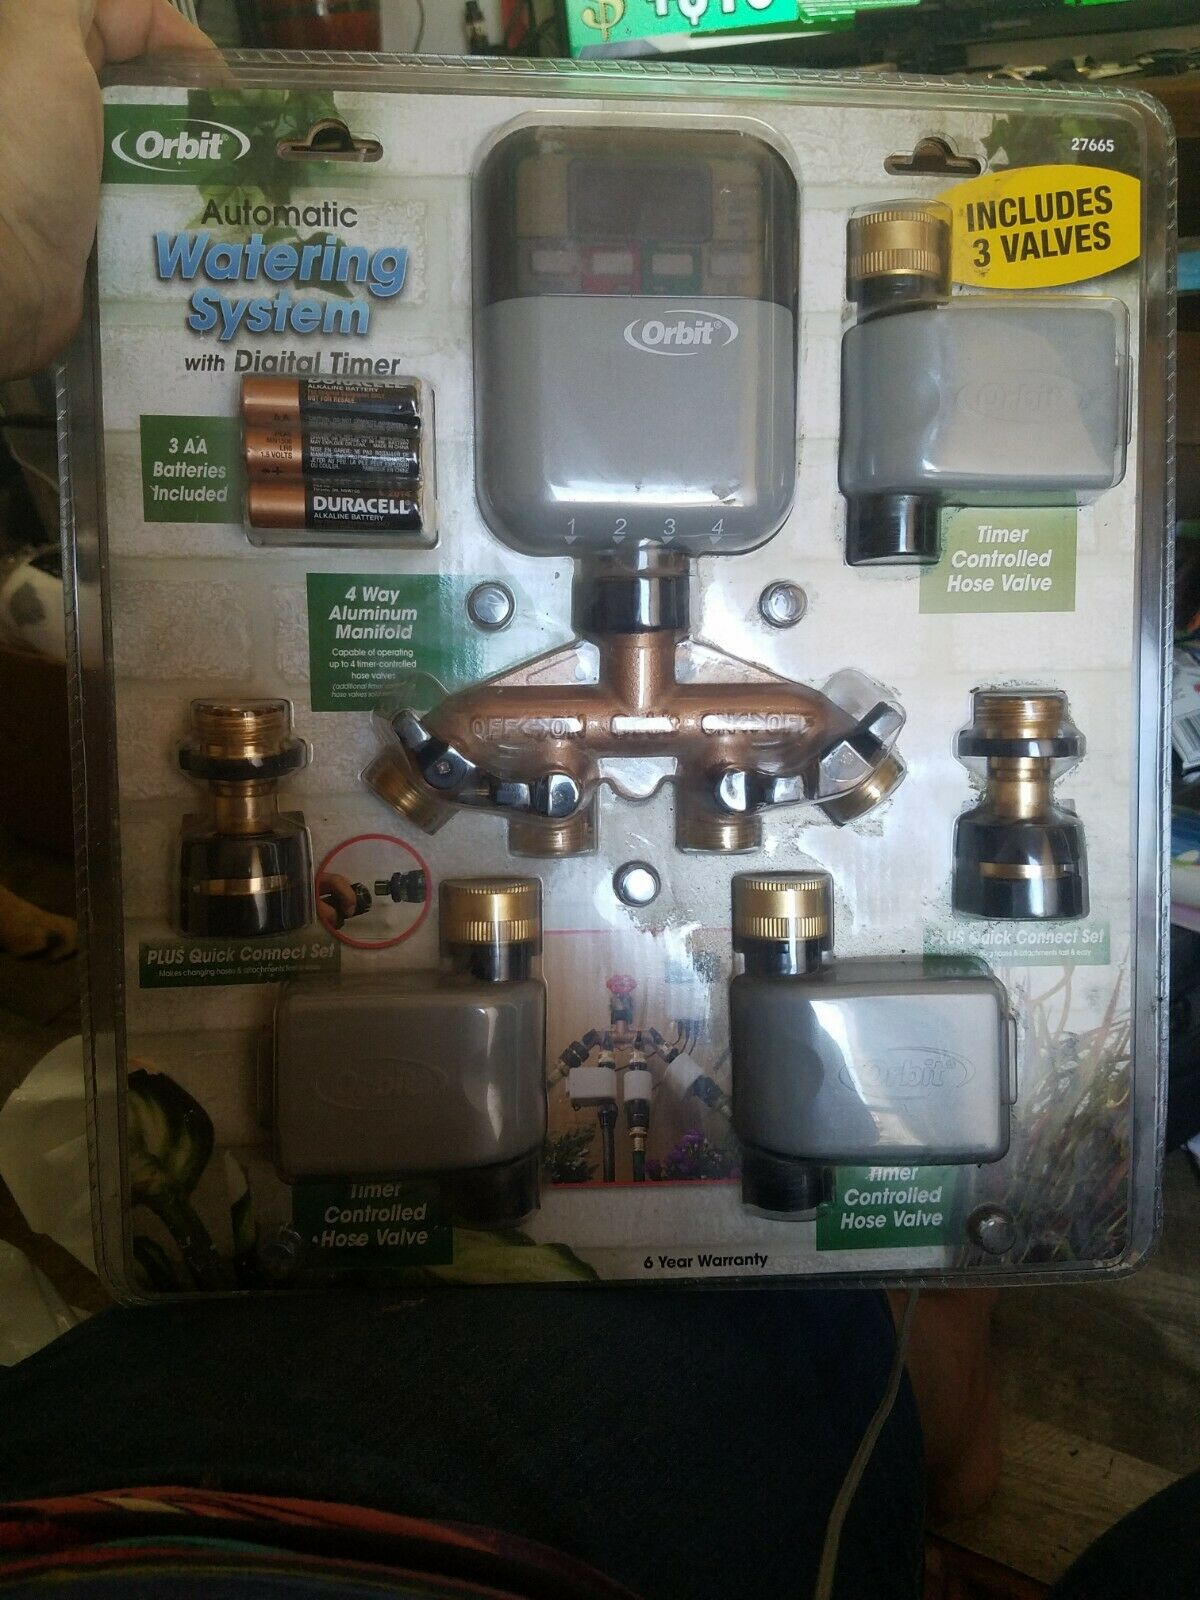 NOS Orbit Automatic Watering System with Digital Timer Sealed